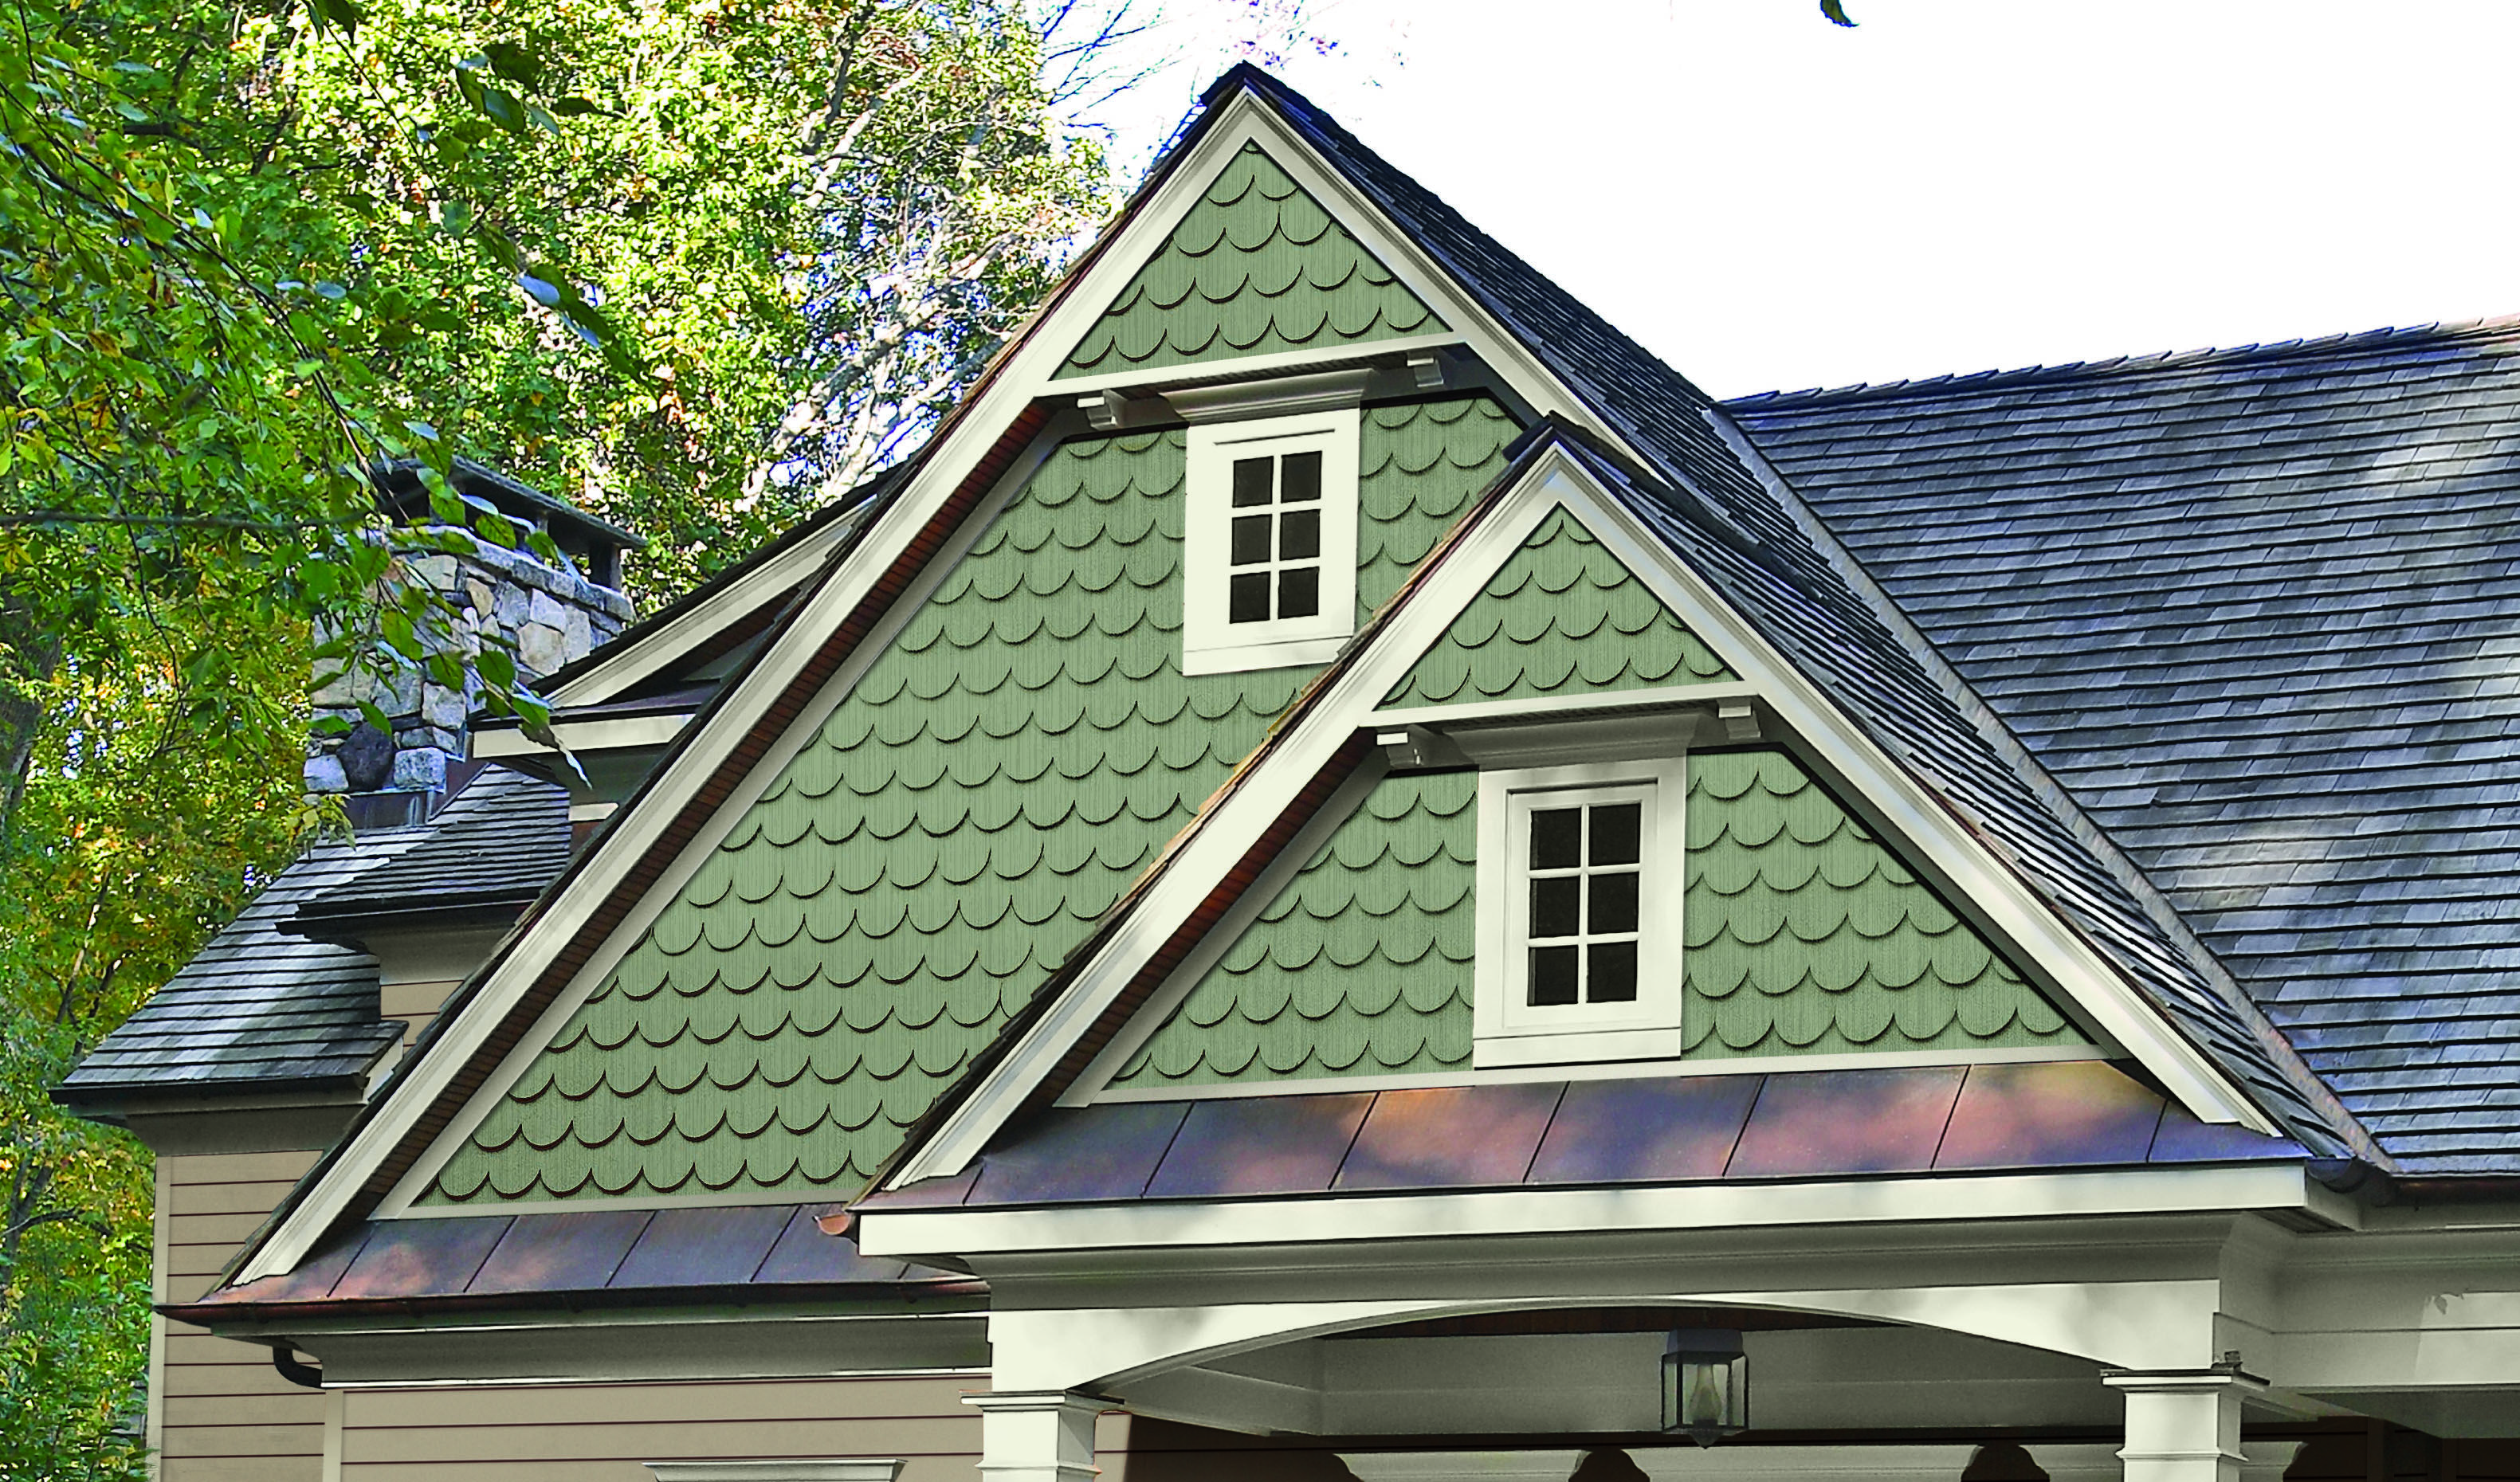 Adding Texture With Scalloped Siding Shingle Siding Cottage Exterior Vinyl Siding